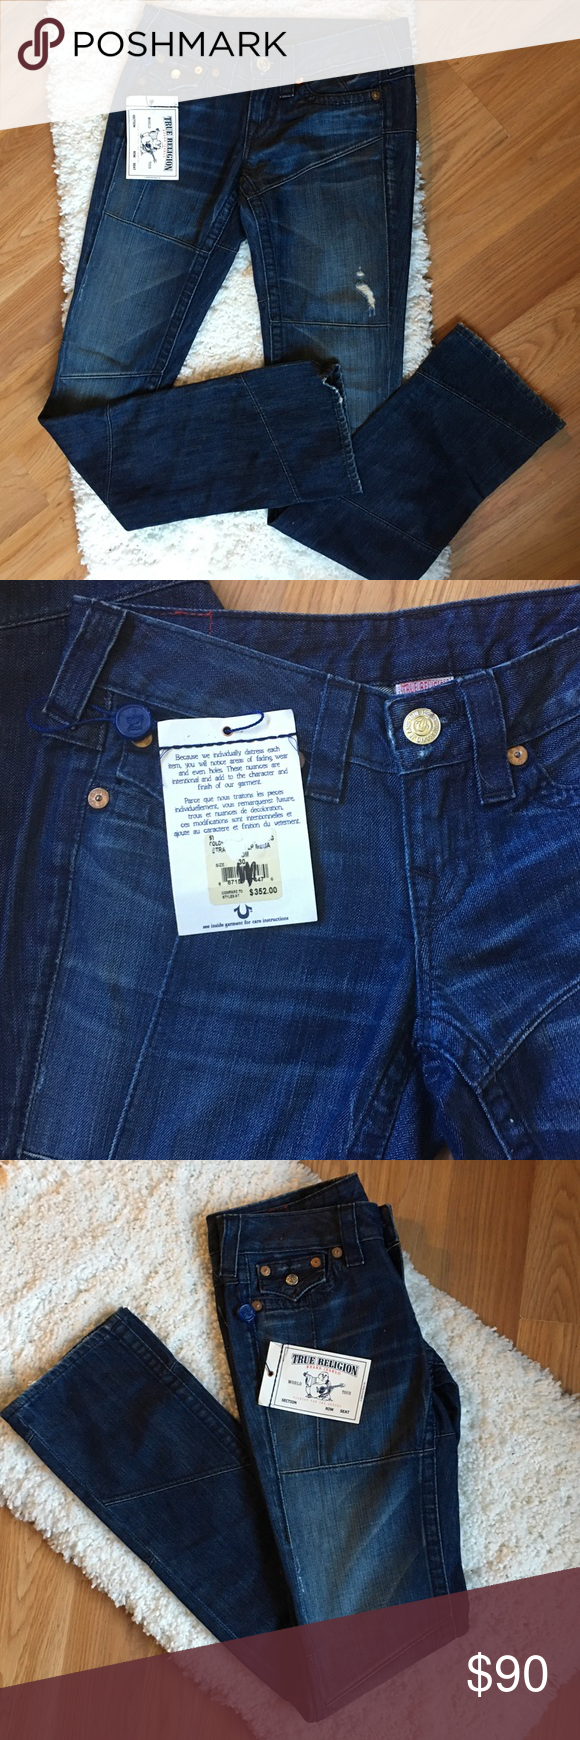 "NWT True Religion Straight Leg Jeans Brand new with tags! Inseam is 34"". True Religion Jeans Straight Leg"